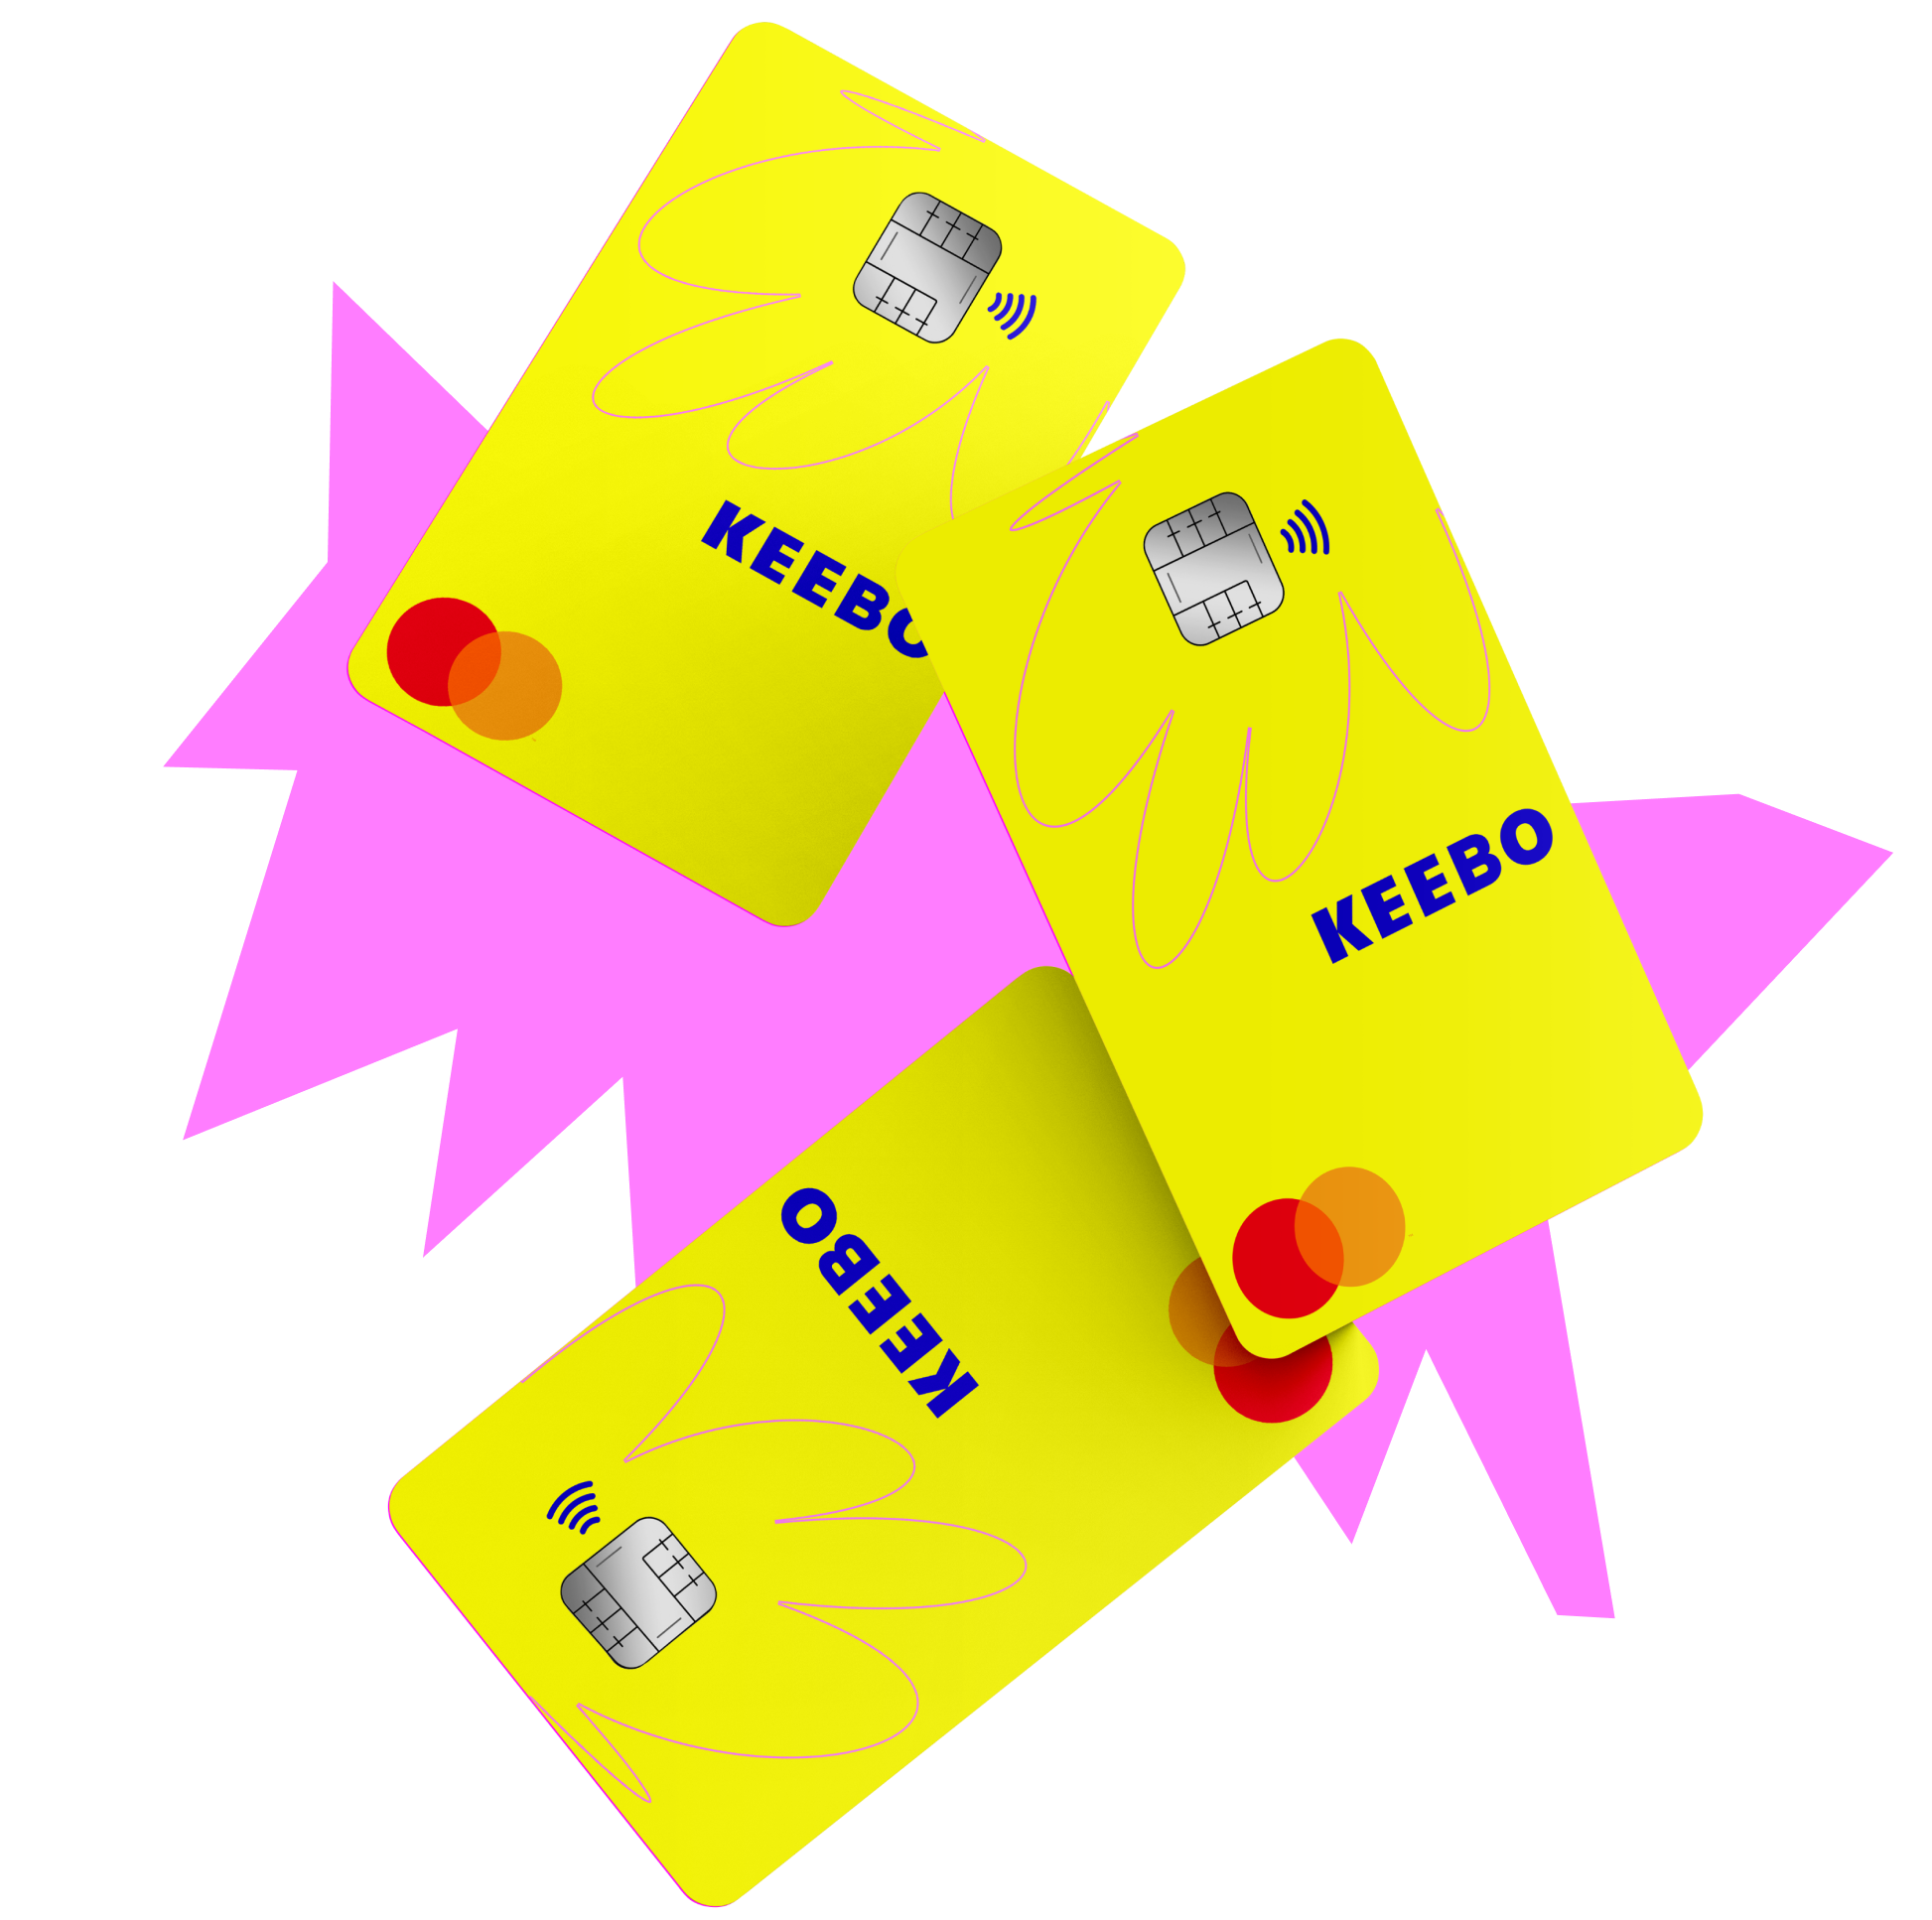 Yellow Keebo credit cards hovering over a pink brand element